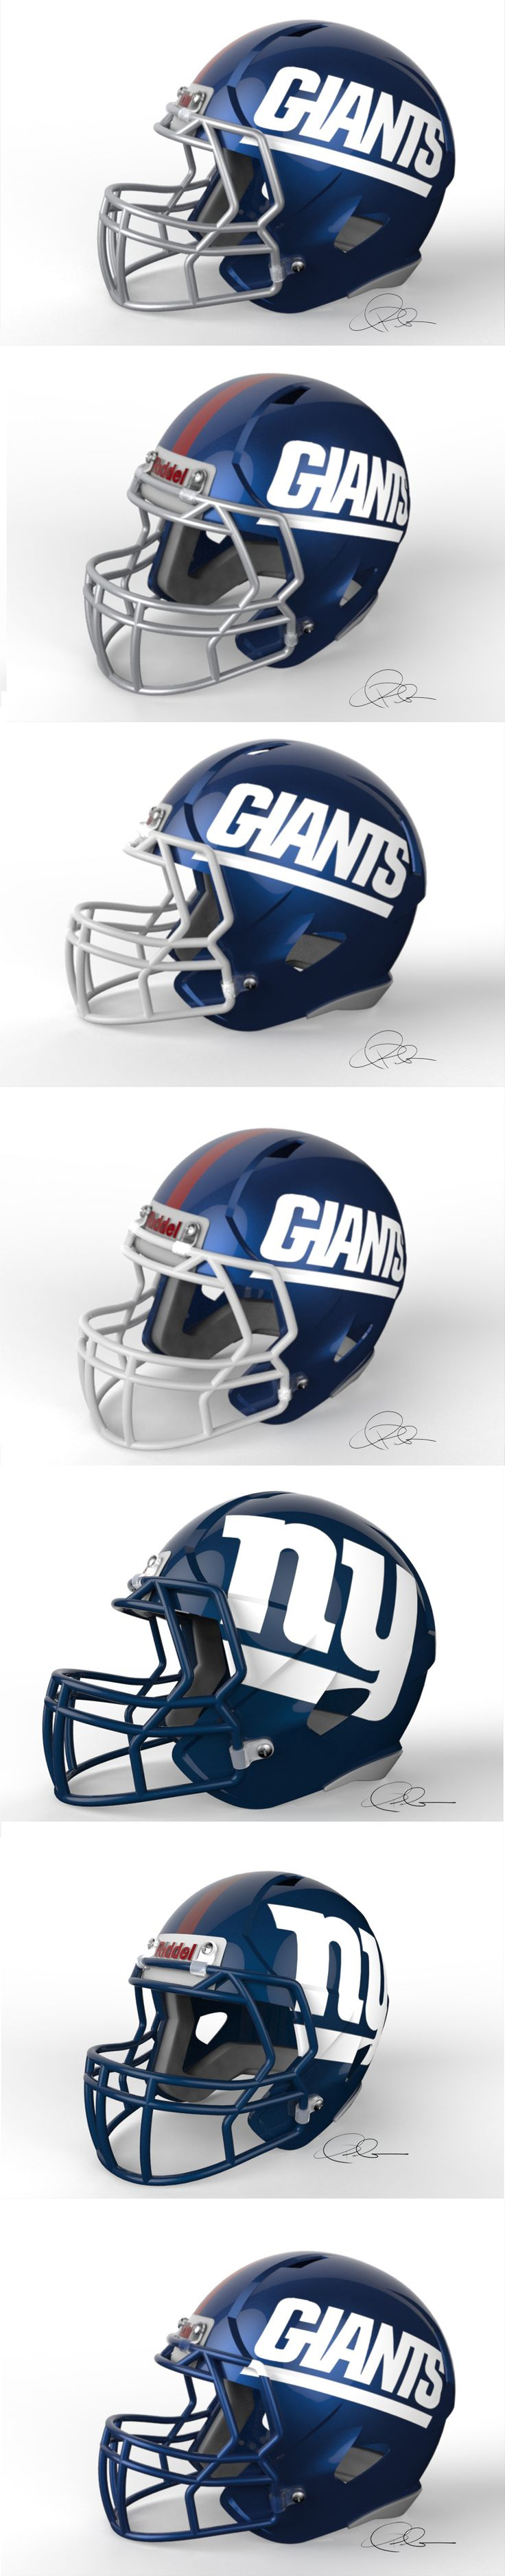 Some NY Giants helmet concepts I did awhile ago after ESPN released that garbage they found online.